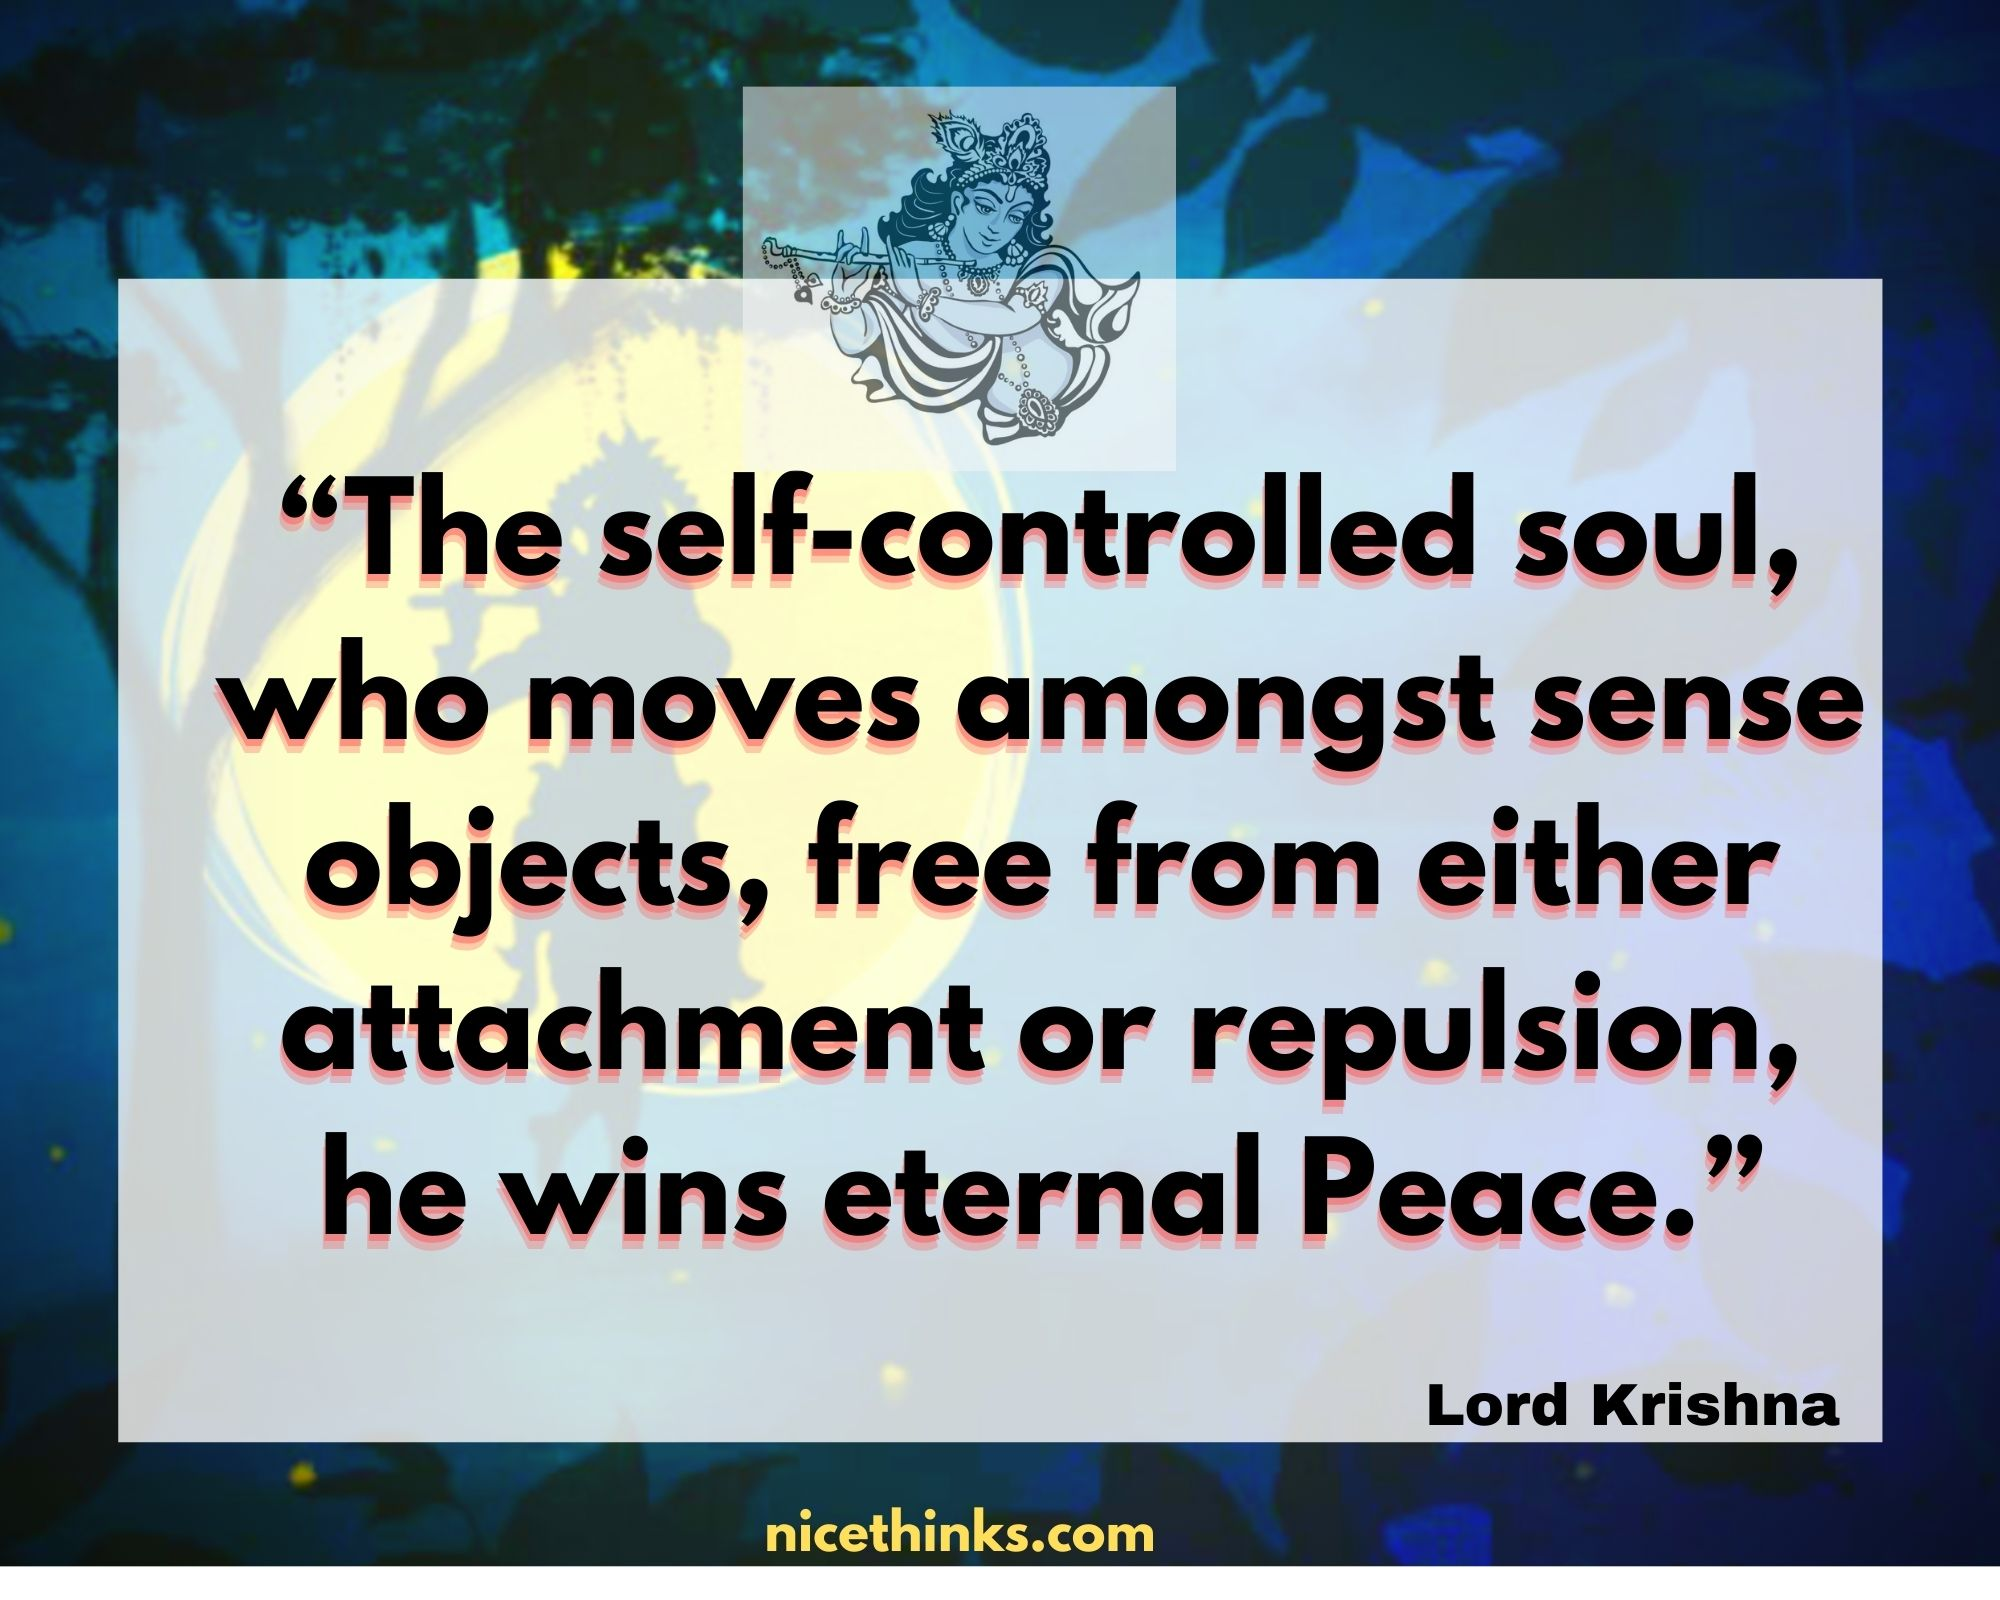 lord krishna best quotes